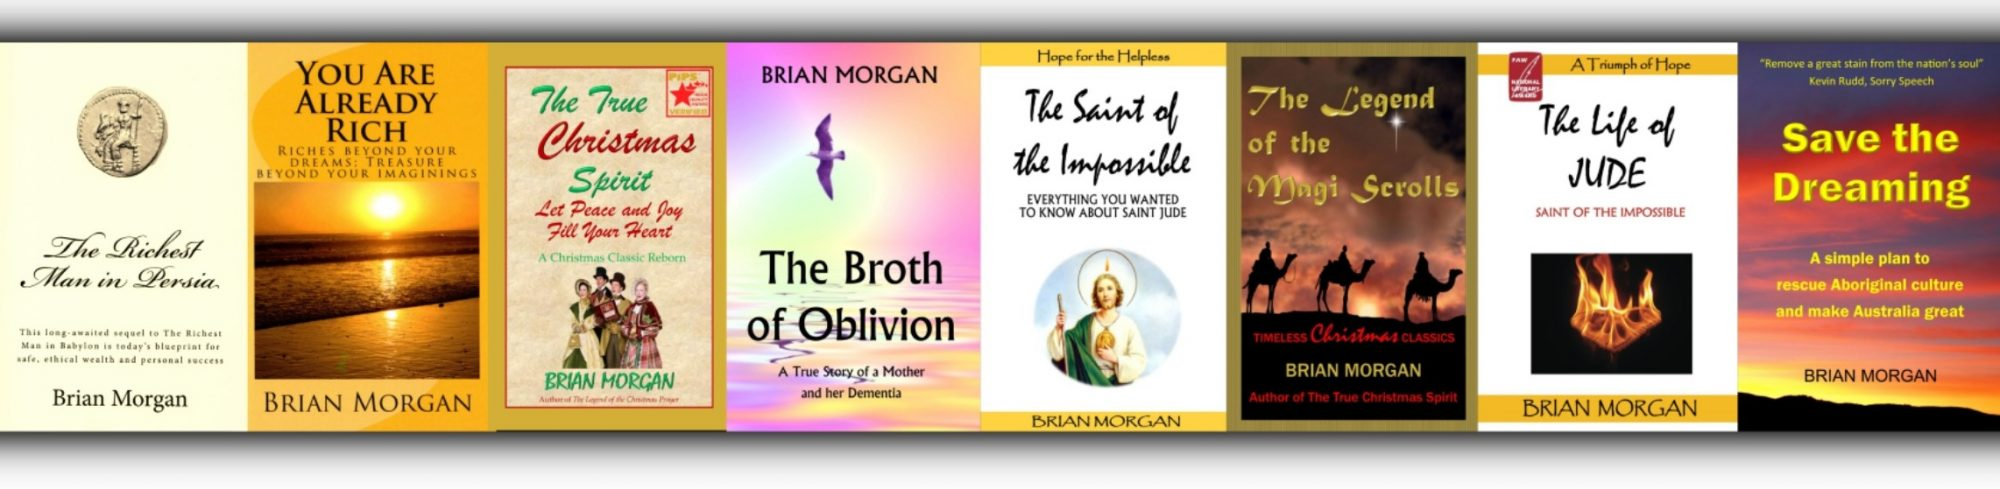 Brian Morgan Books